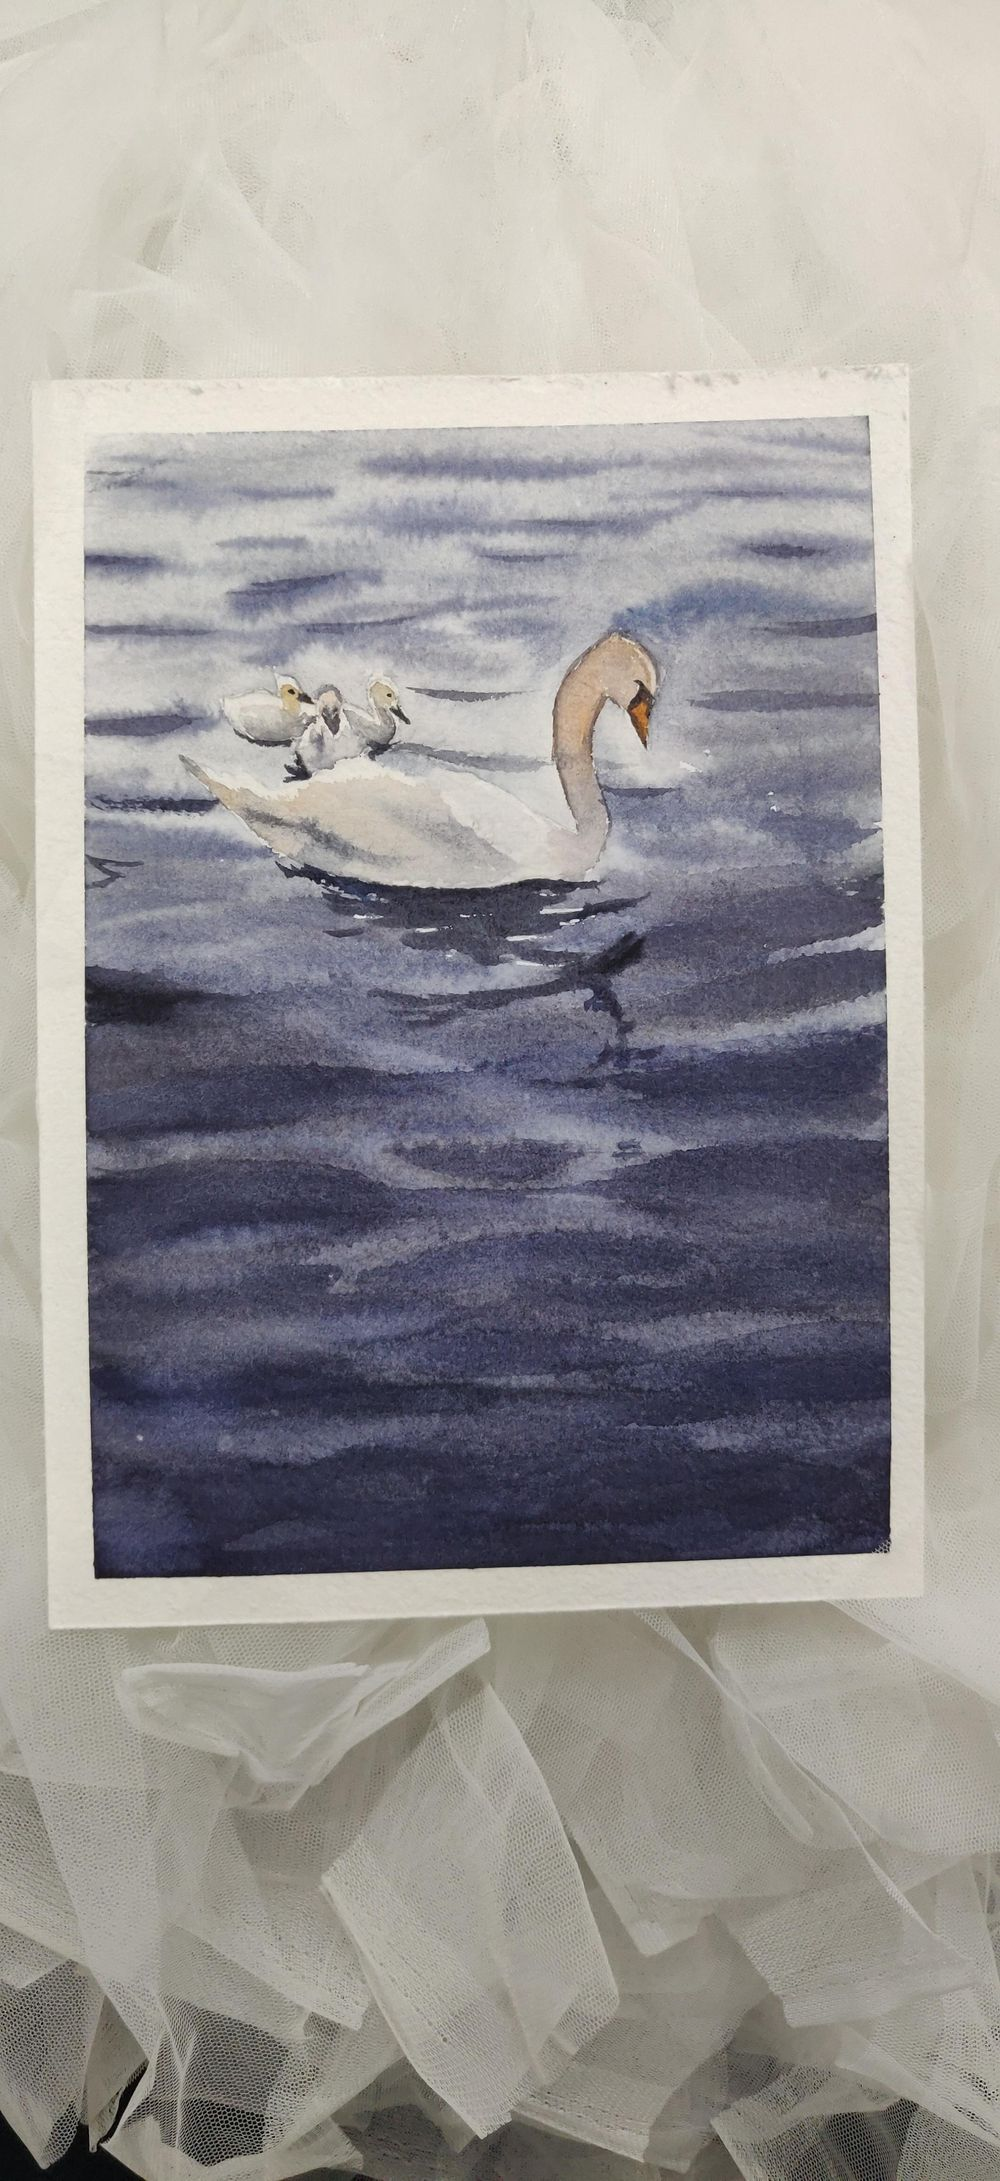 Swan Lake - image 1 - student project